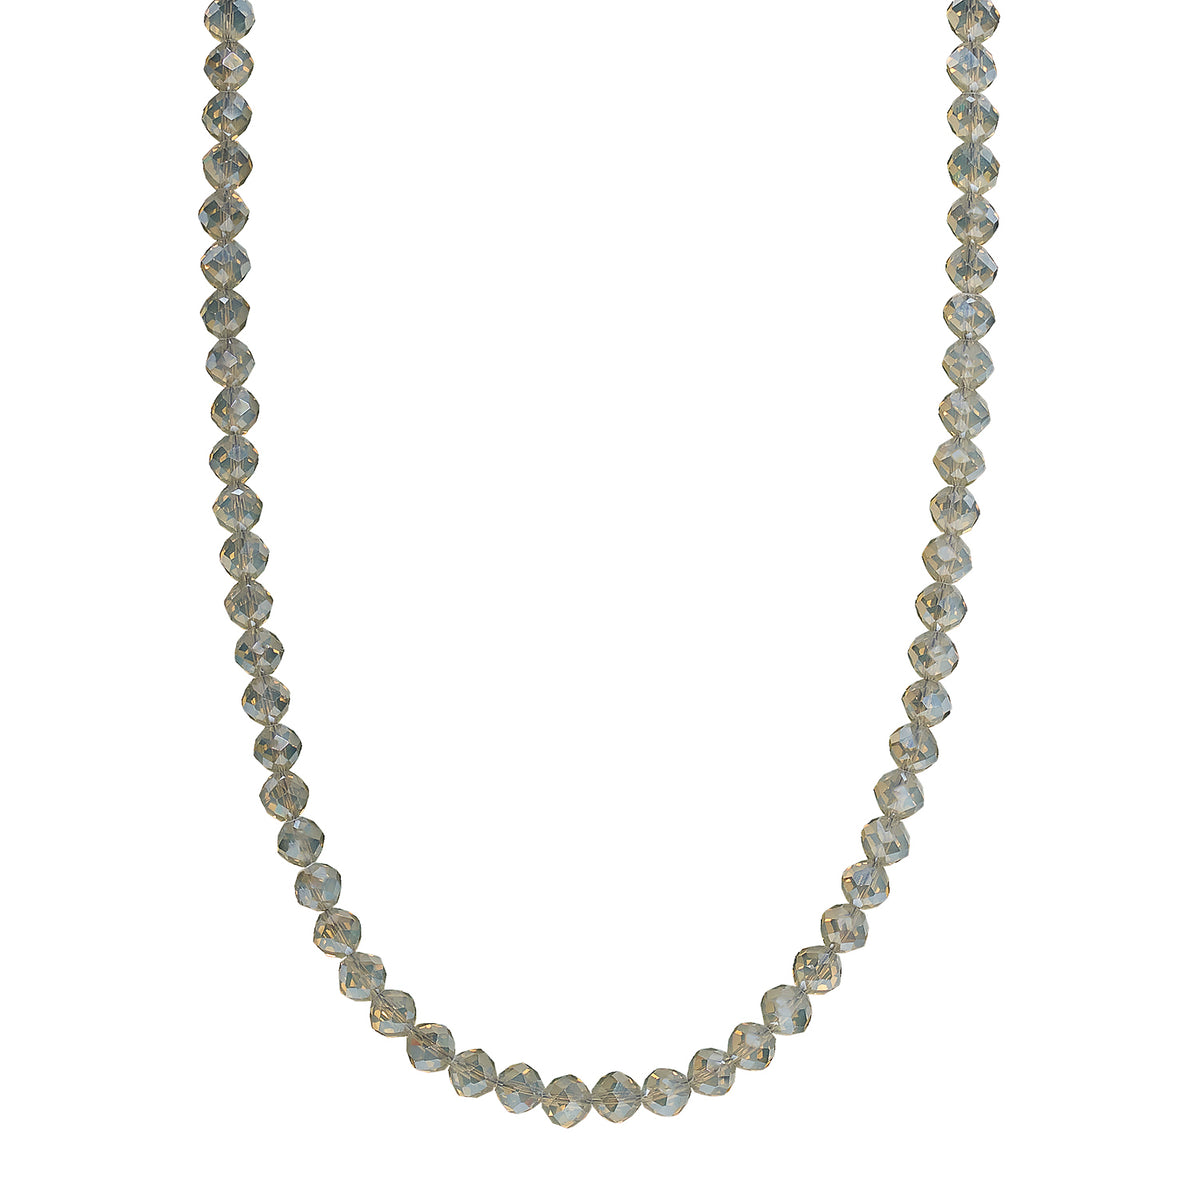 SAND LONG NECKLACE |8MM BEAD